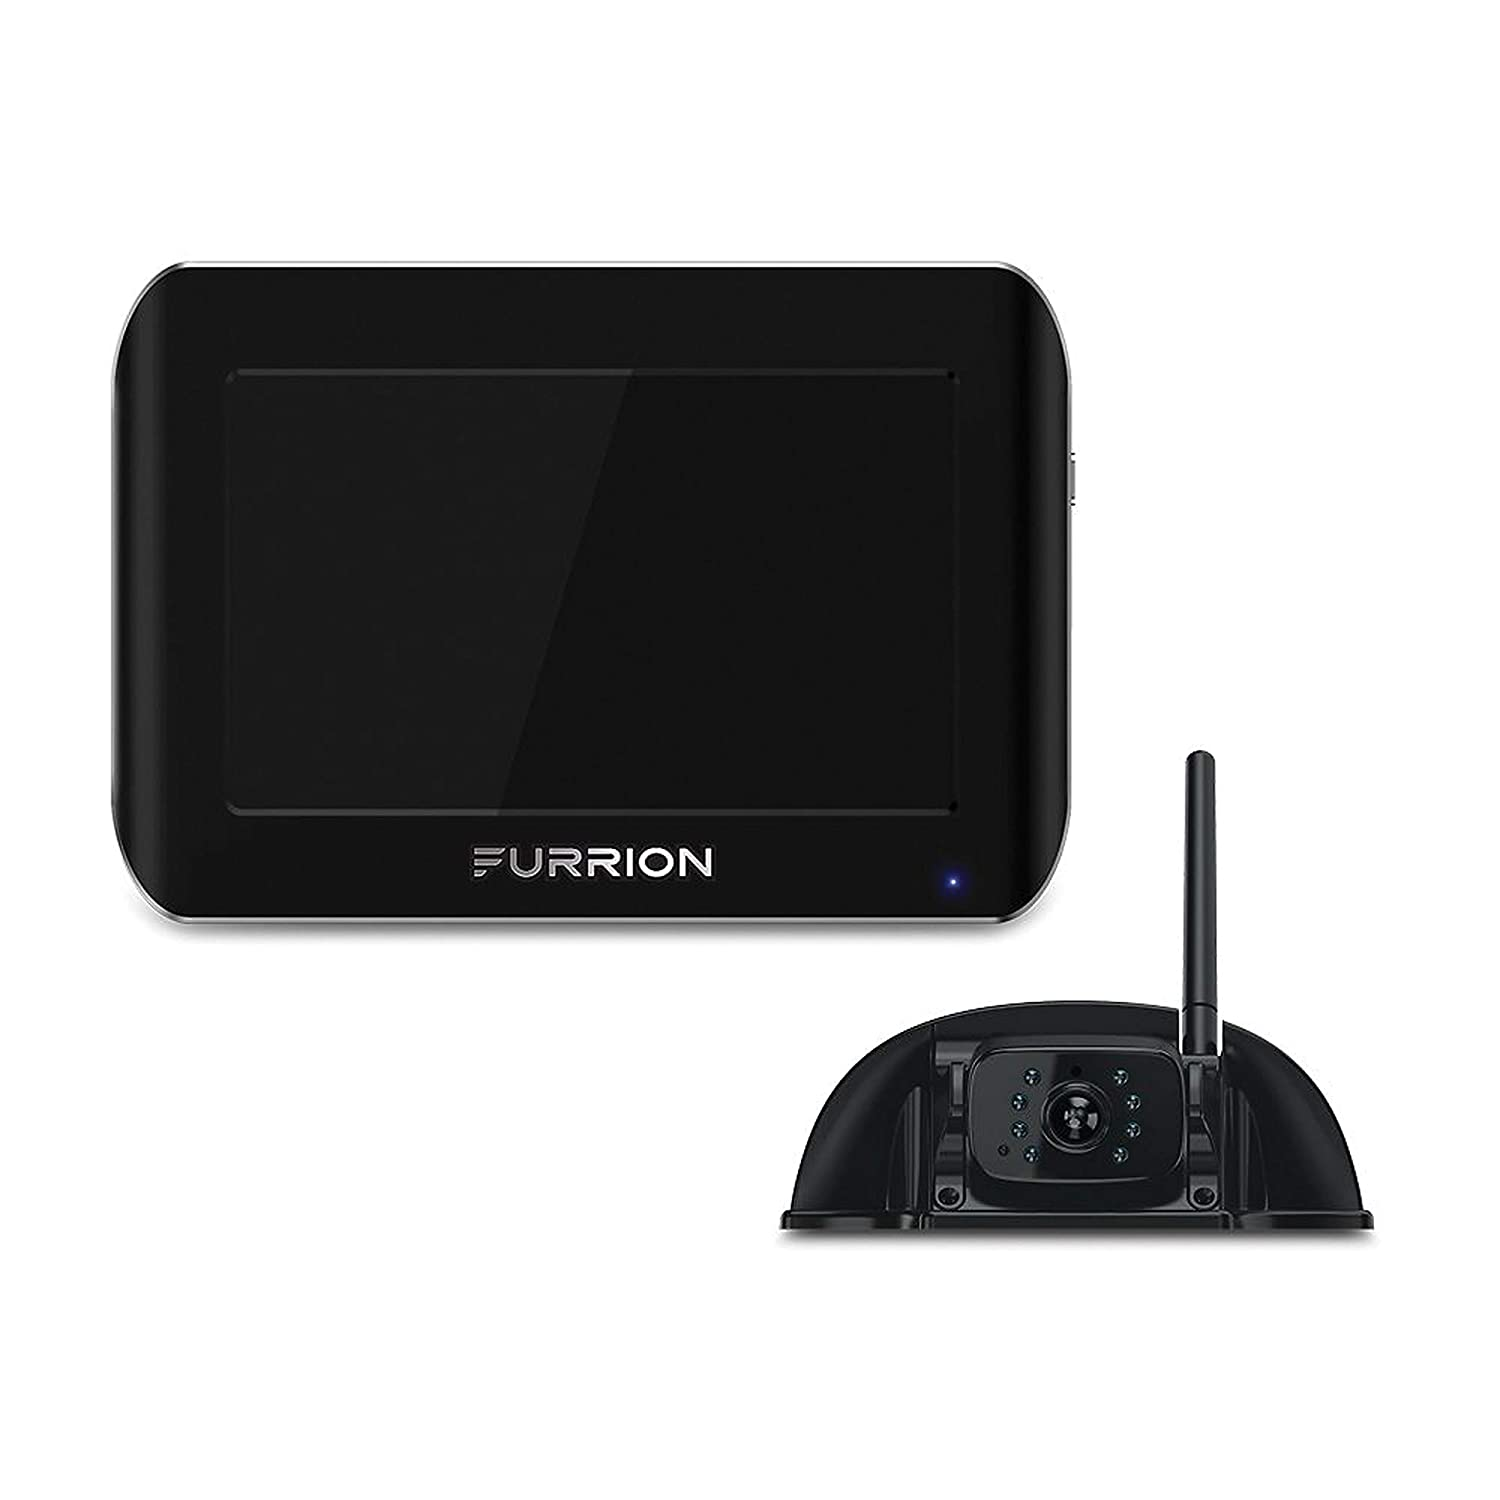 "Furrion FOS43TASF Vision S Black 4.3"" Vehicle Observation System"